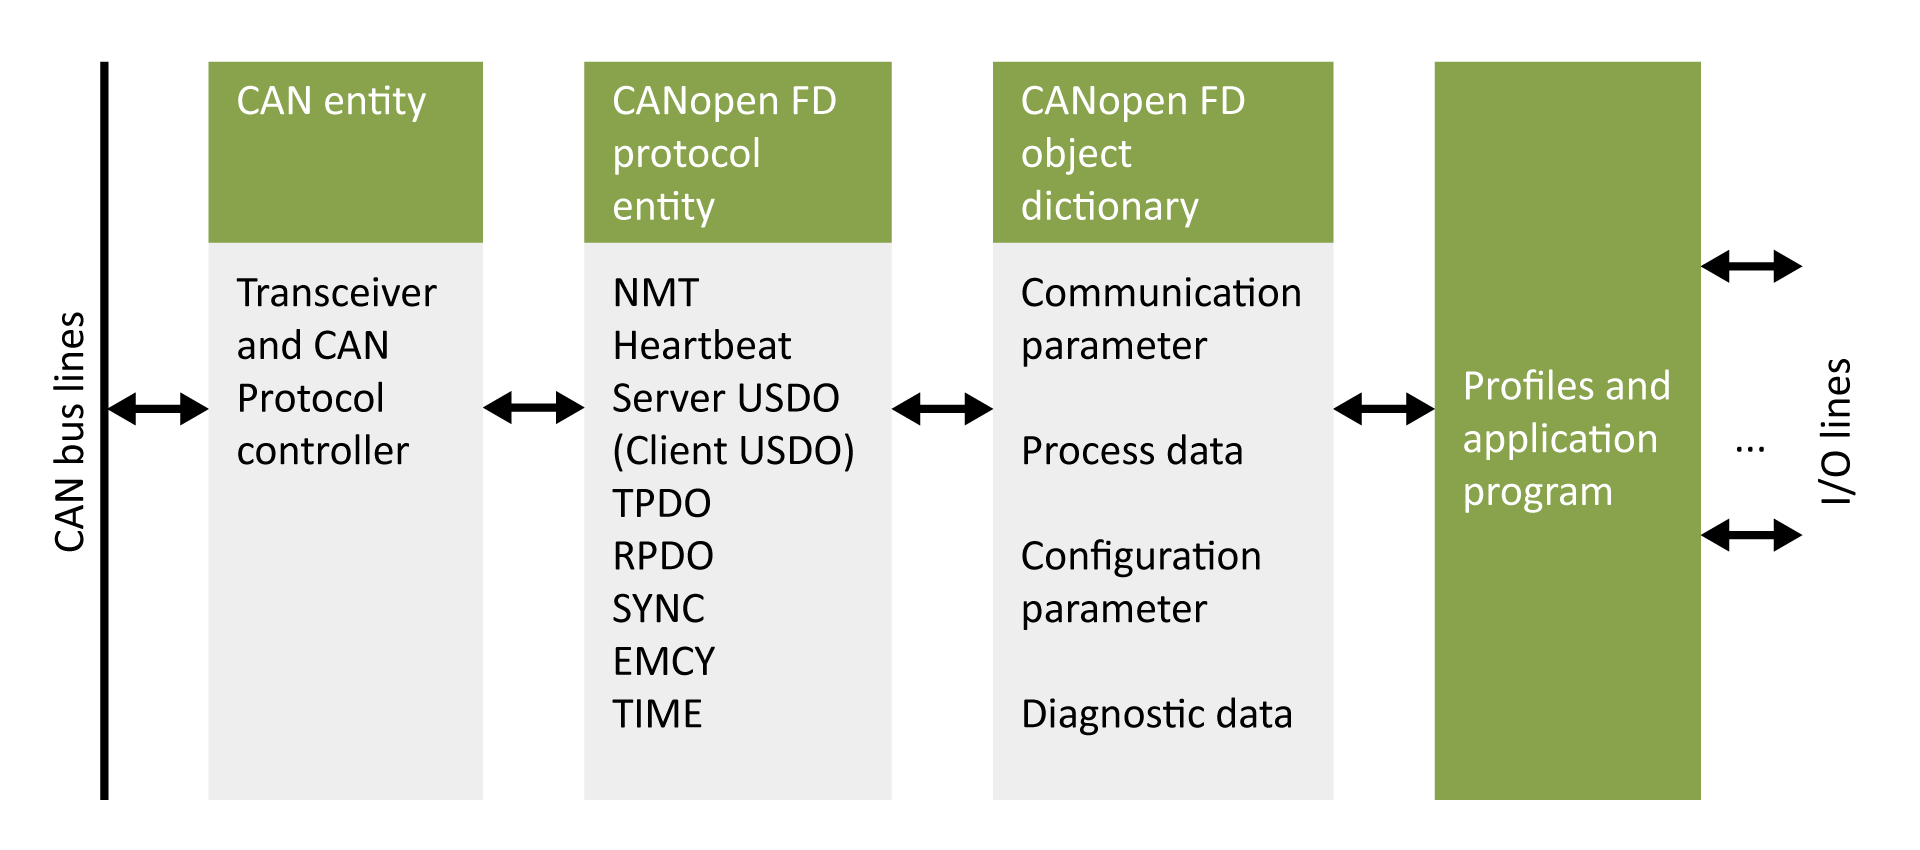 The CANopen FD device model